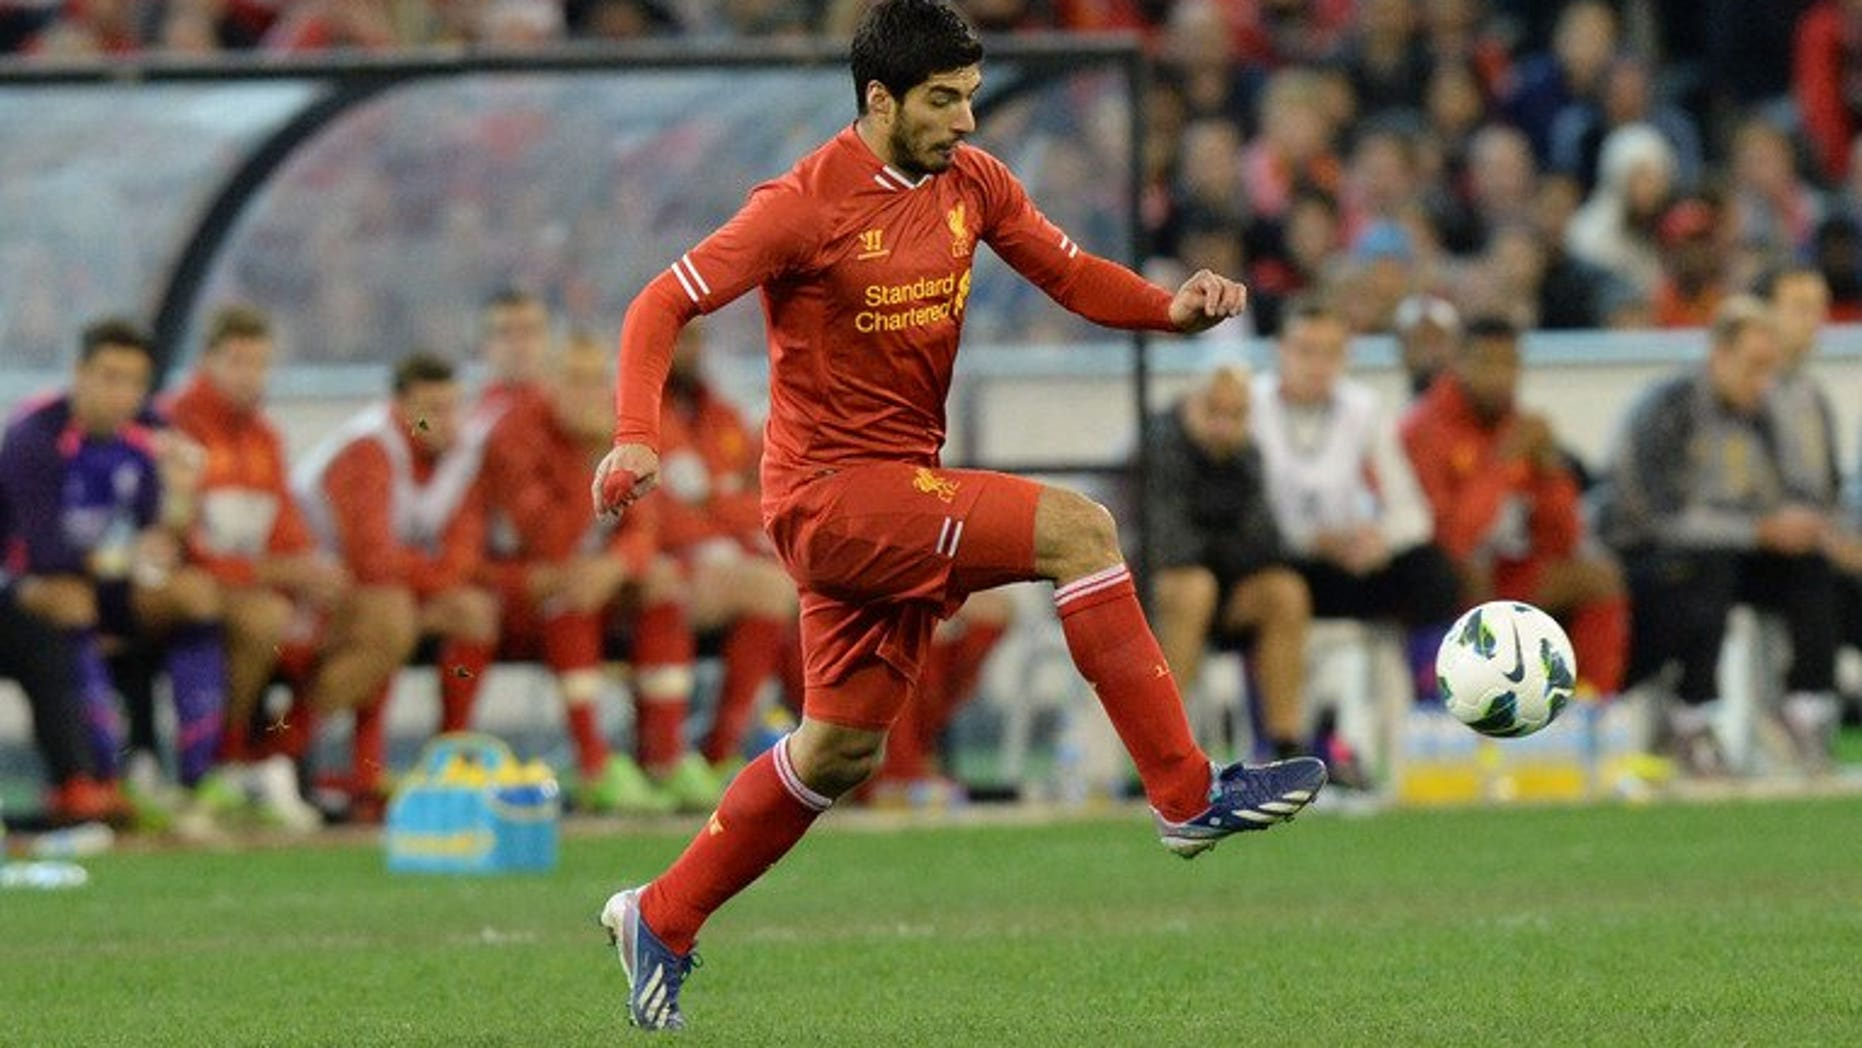 Liverpool's Luis Suarez controls the ball against the Melbourne Victory during their football friendly match at the MCG in Melbourne on July 24, 2013. Manager Brendan Rodgers has urged Suarez to repay the faith placed in him by supporters after Liverpool's emotional 2-0 win on their pre-season tour in Australia.